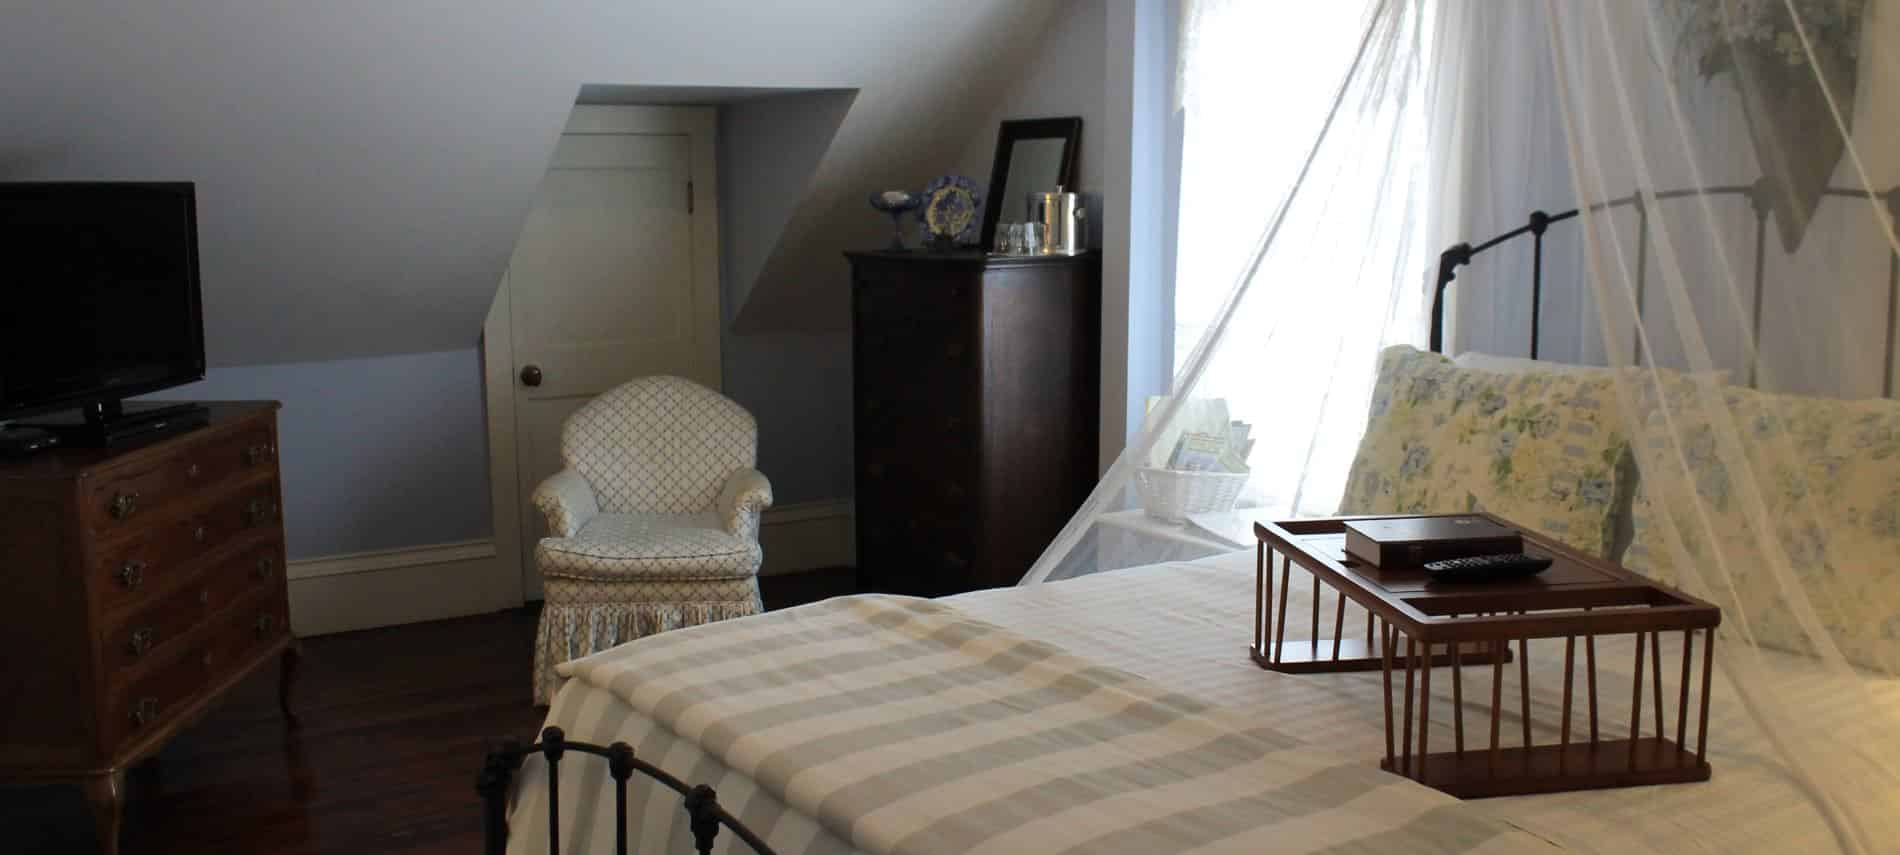 Cape Cod guest room, slanted ceiling, wood floor, window, metal bed with sheer white canopy, upholstered chair, dresser and TV